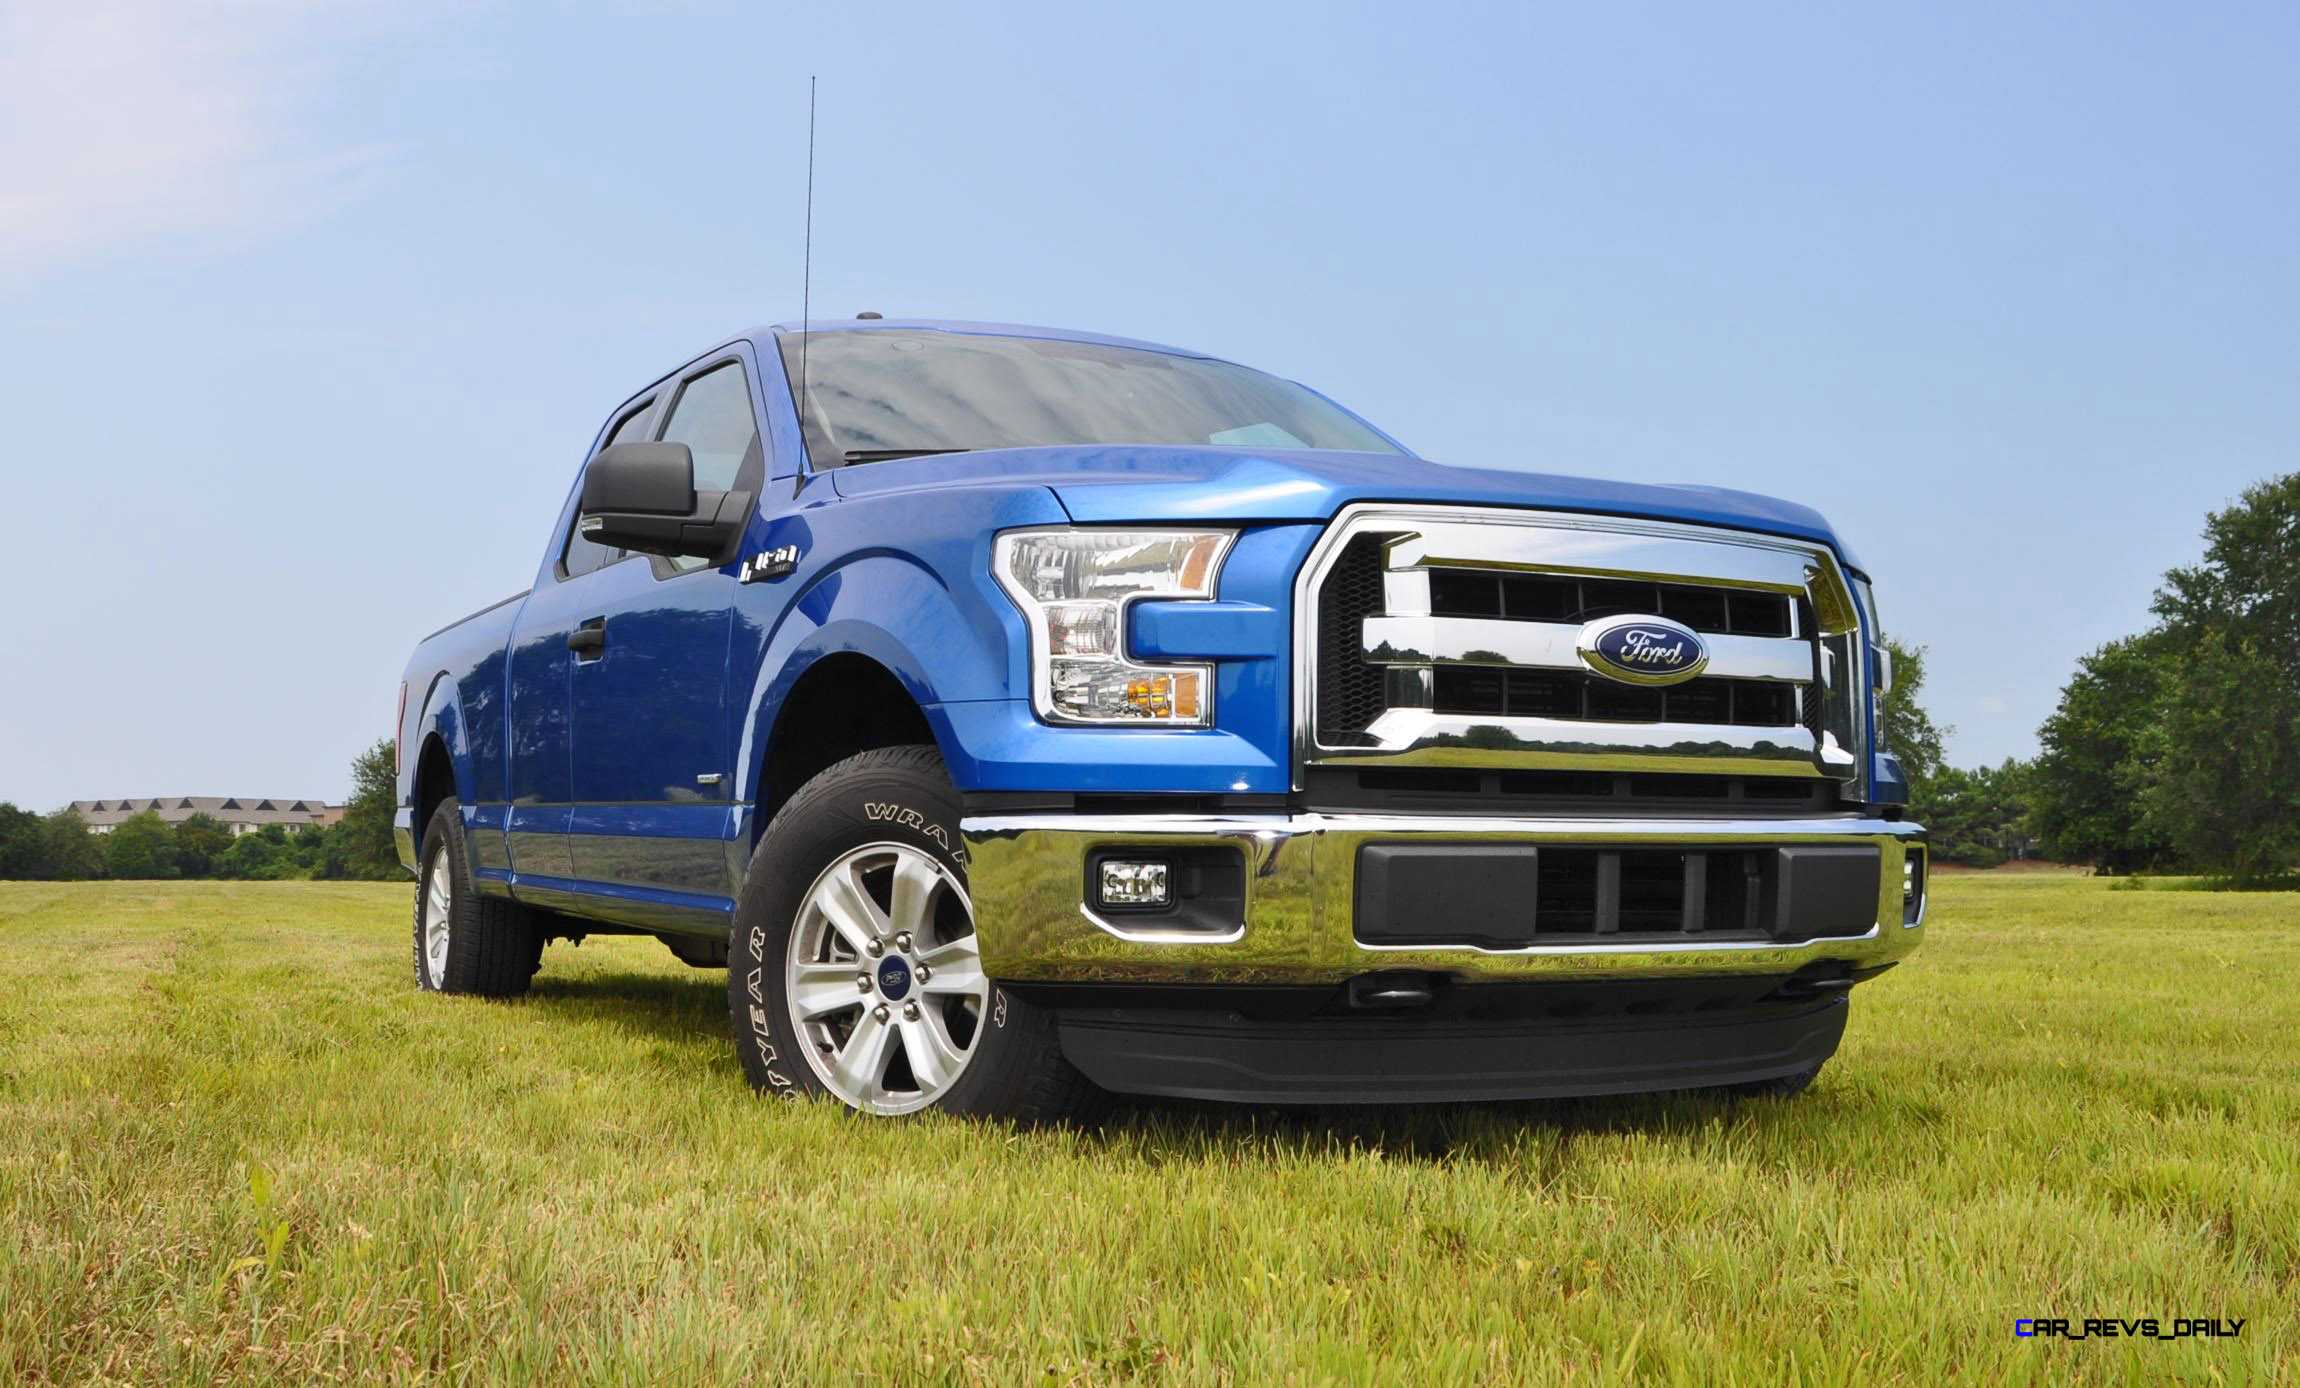 2015 Ford F 150 Xlt Review Blue Moving Into The Profile 150s Best Details Start To Charm Your Eyes And Mind Front Fender Is Fantastic We Especially Love Beveled Edge